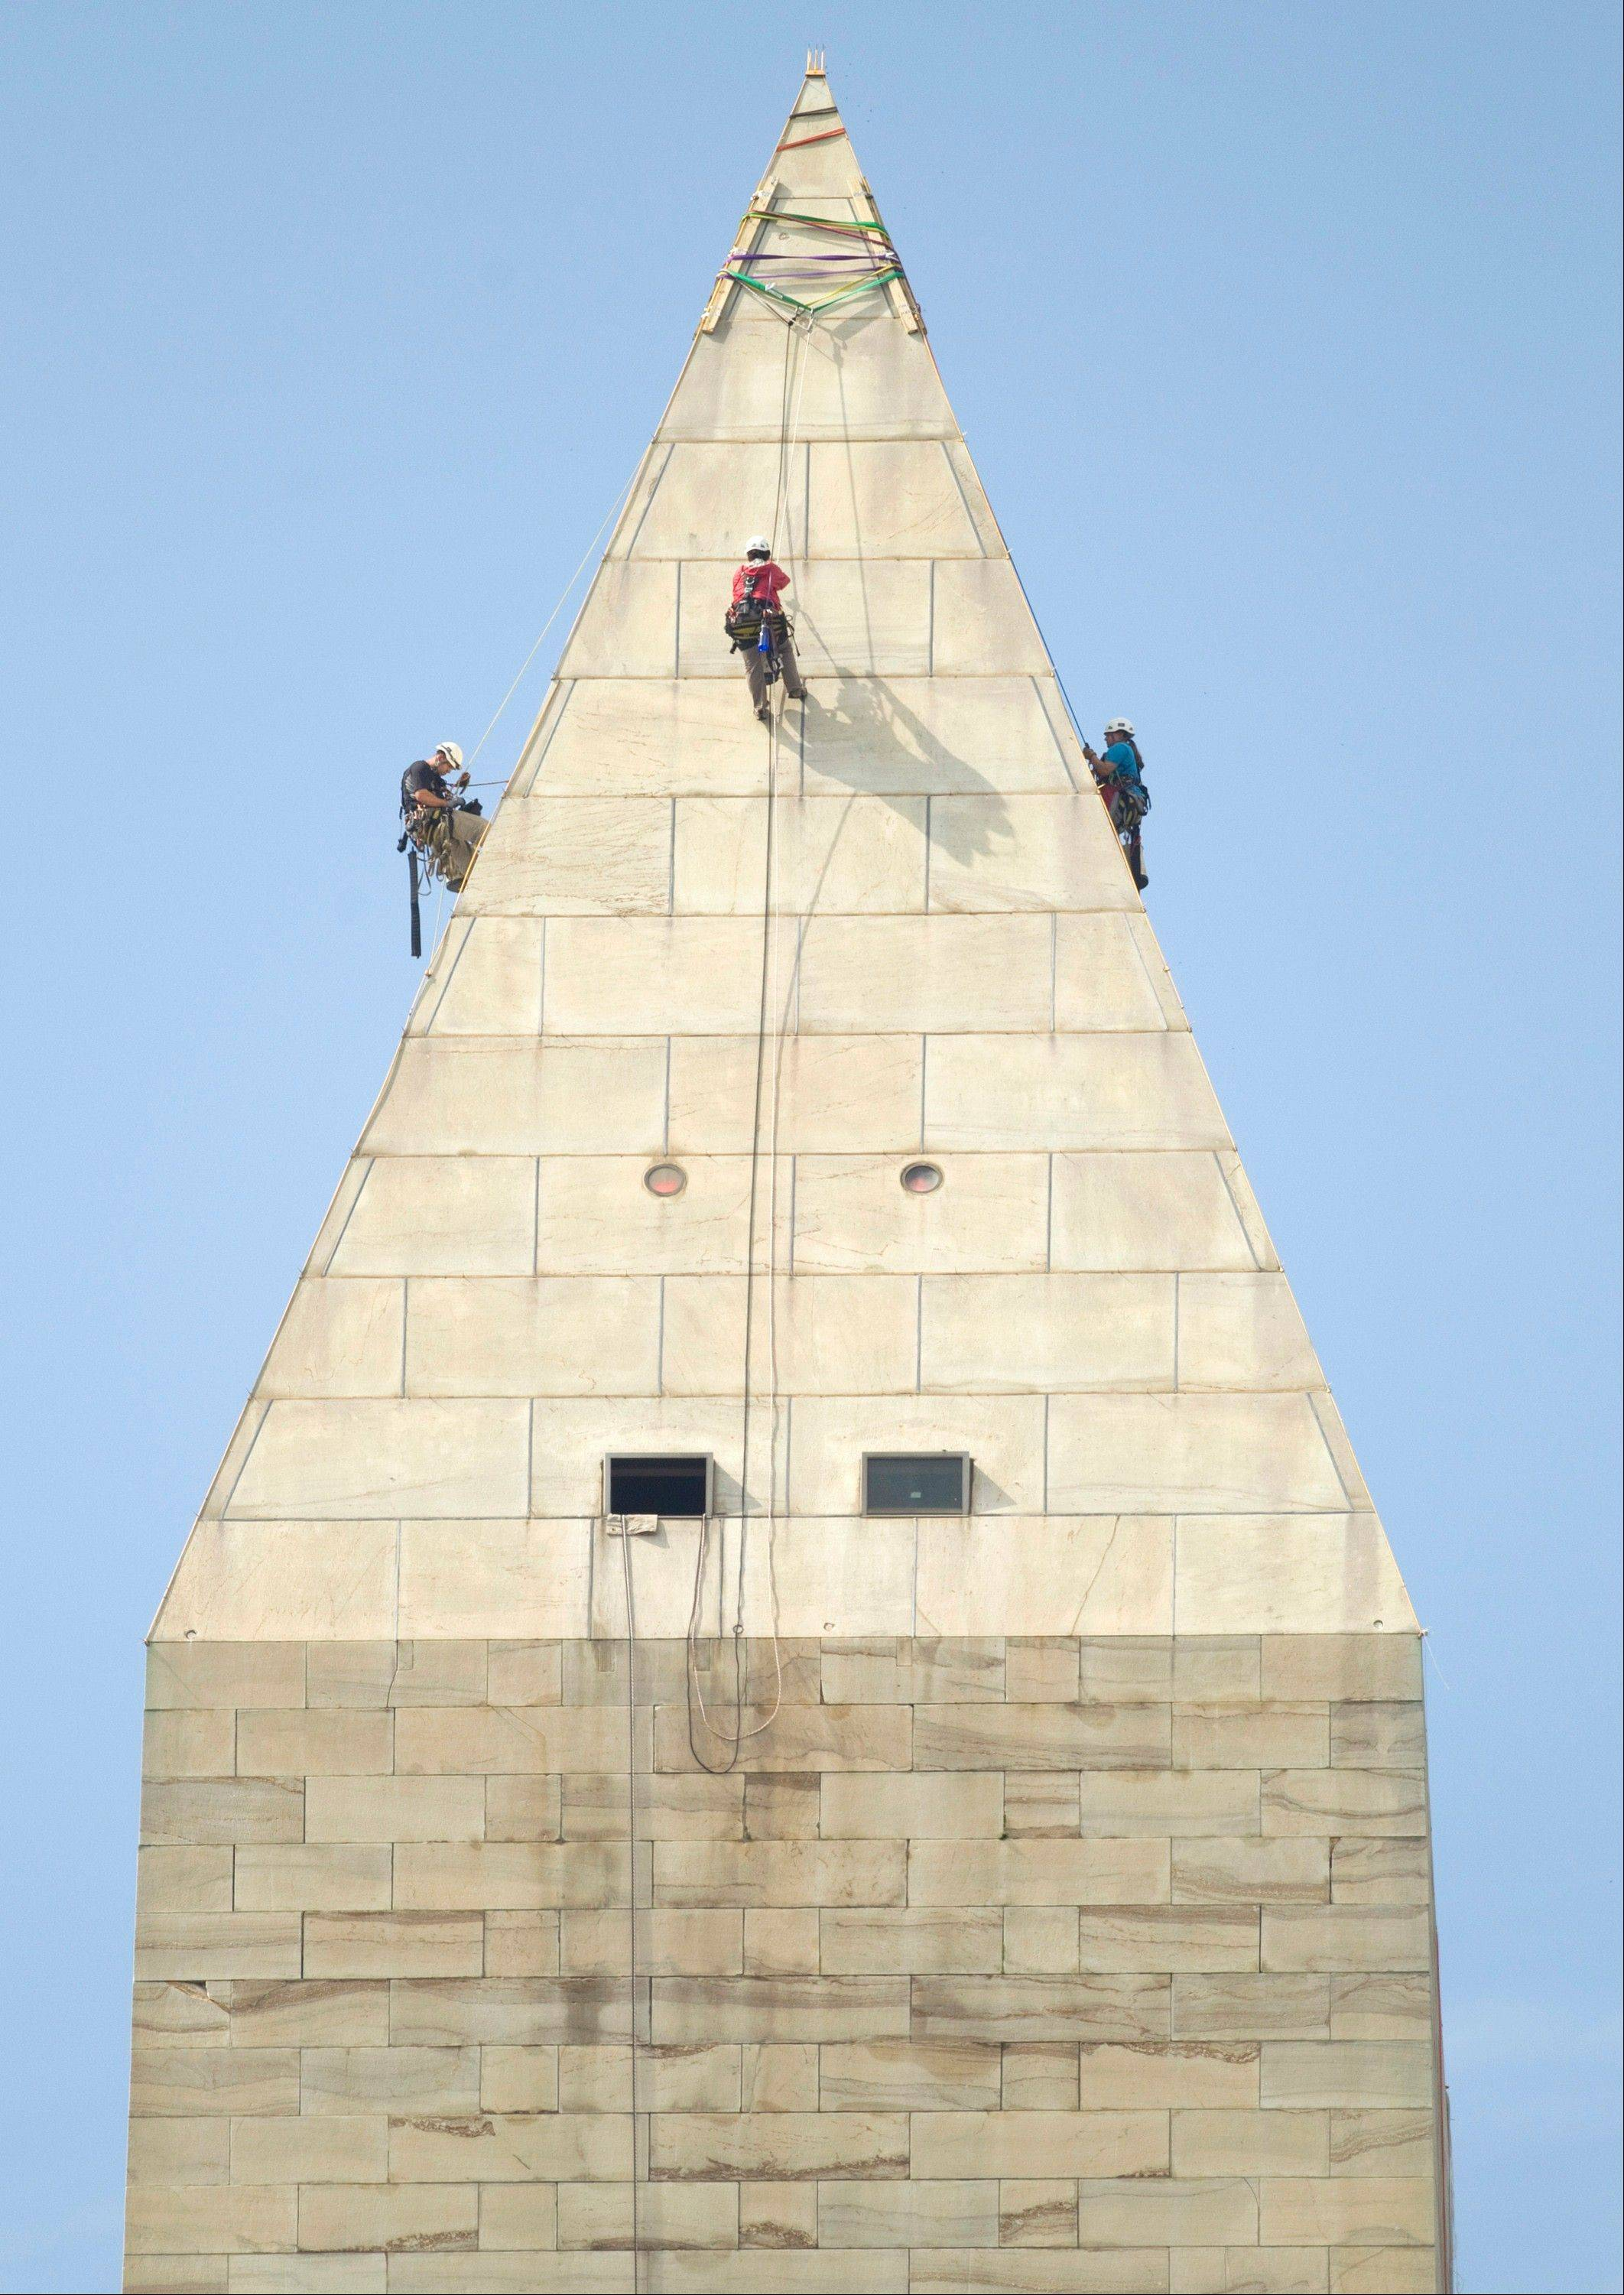 A team of engineers, from left, Dan Gach, Emma Cardini and Katie Francis, harnessed to ropes, inspect the exterior of the Washington Monument for damage caused by last month�s earthquake on Wednesday.